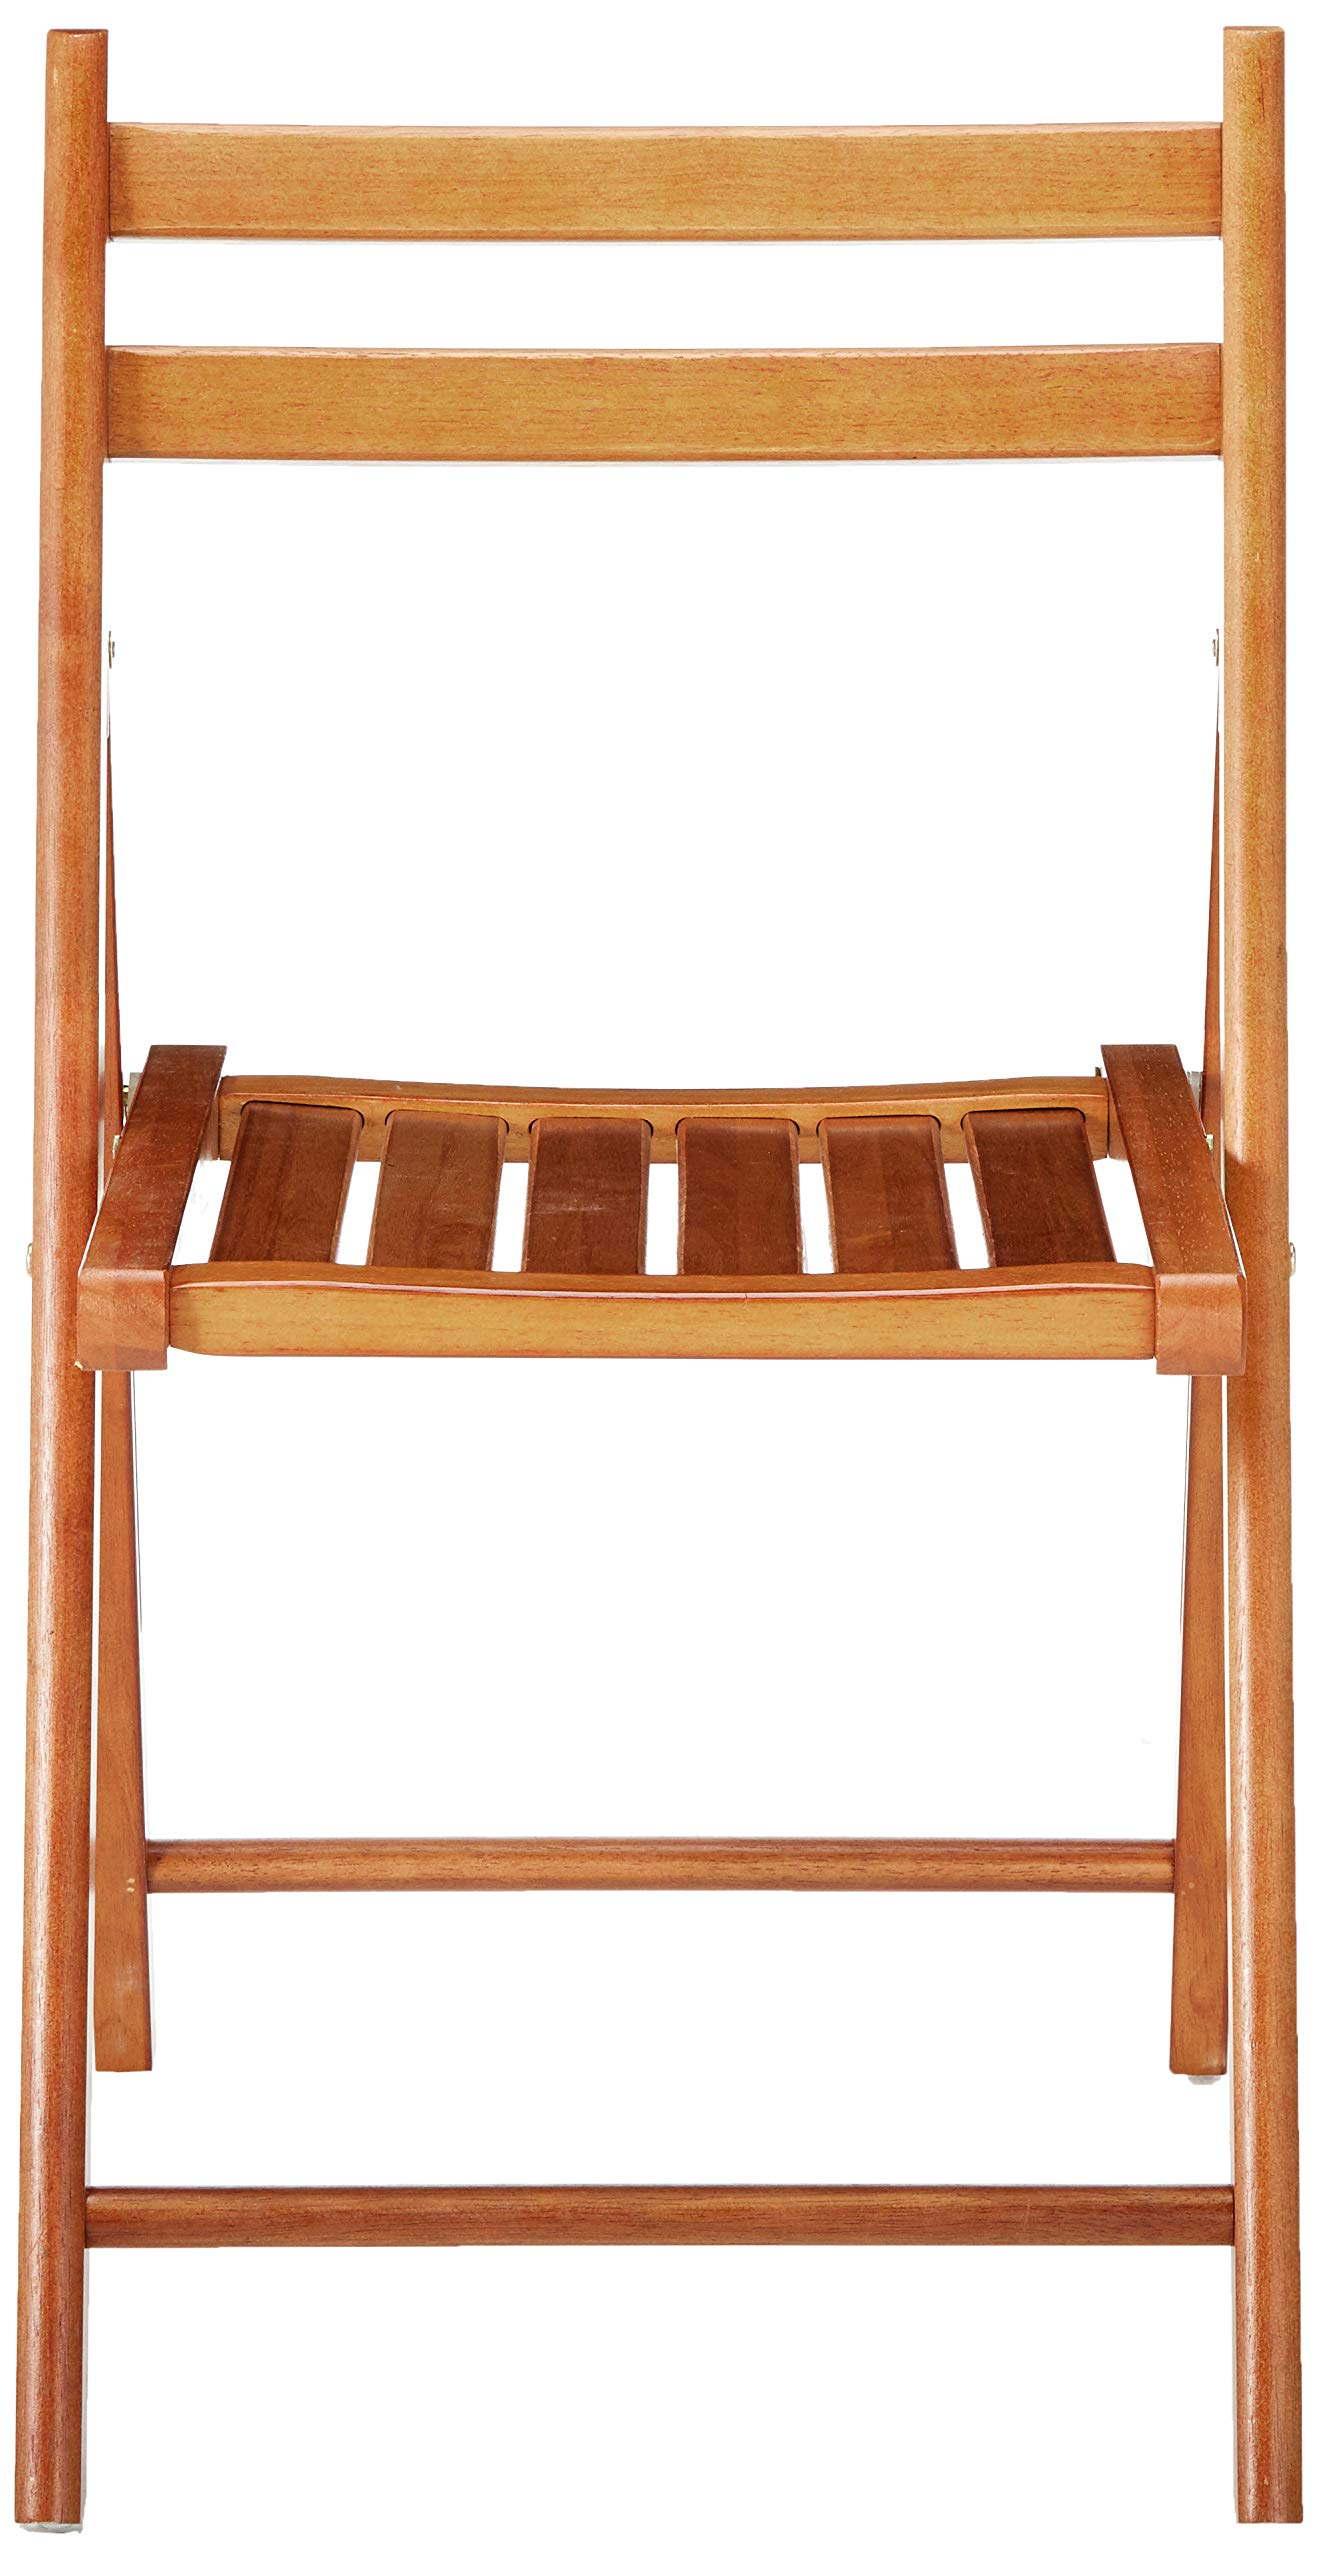 Winsome Wood 33415 Robin 4-PC Folding Set Teak Chair, by Winsome Wood (Image #2)